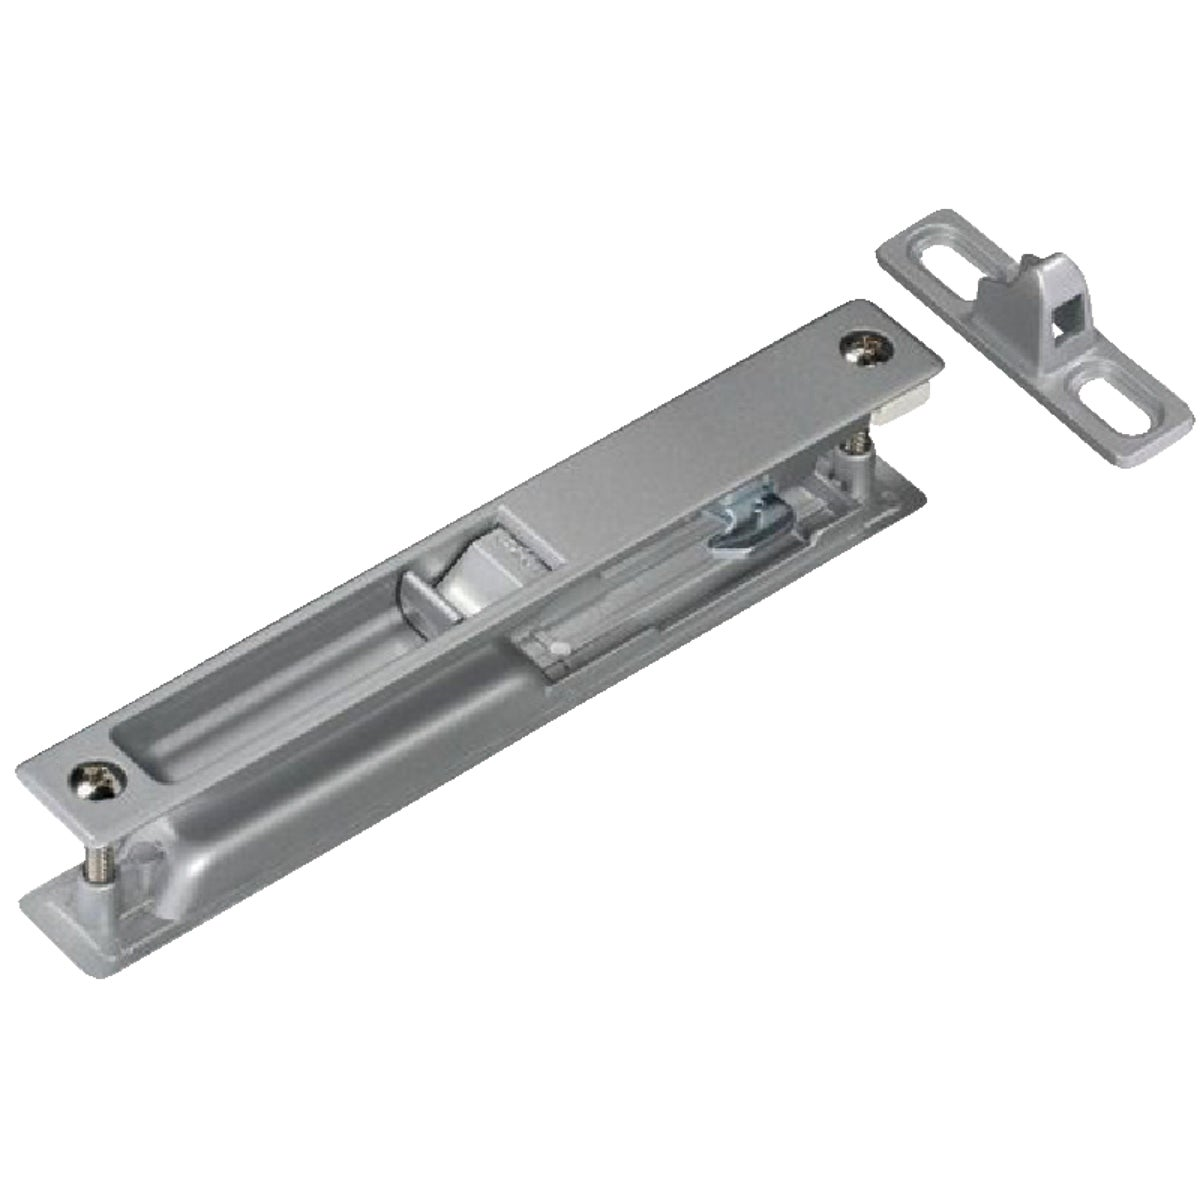 PATIO DOOR HARDWARE SET - V1195 by Hampton Prod Intl